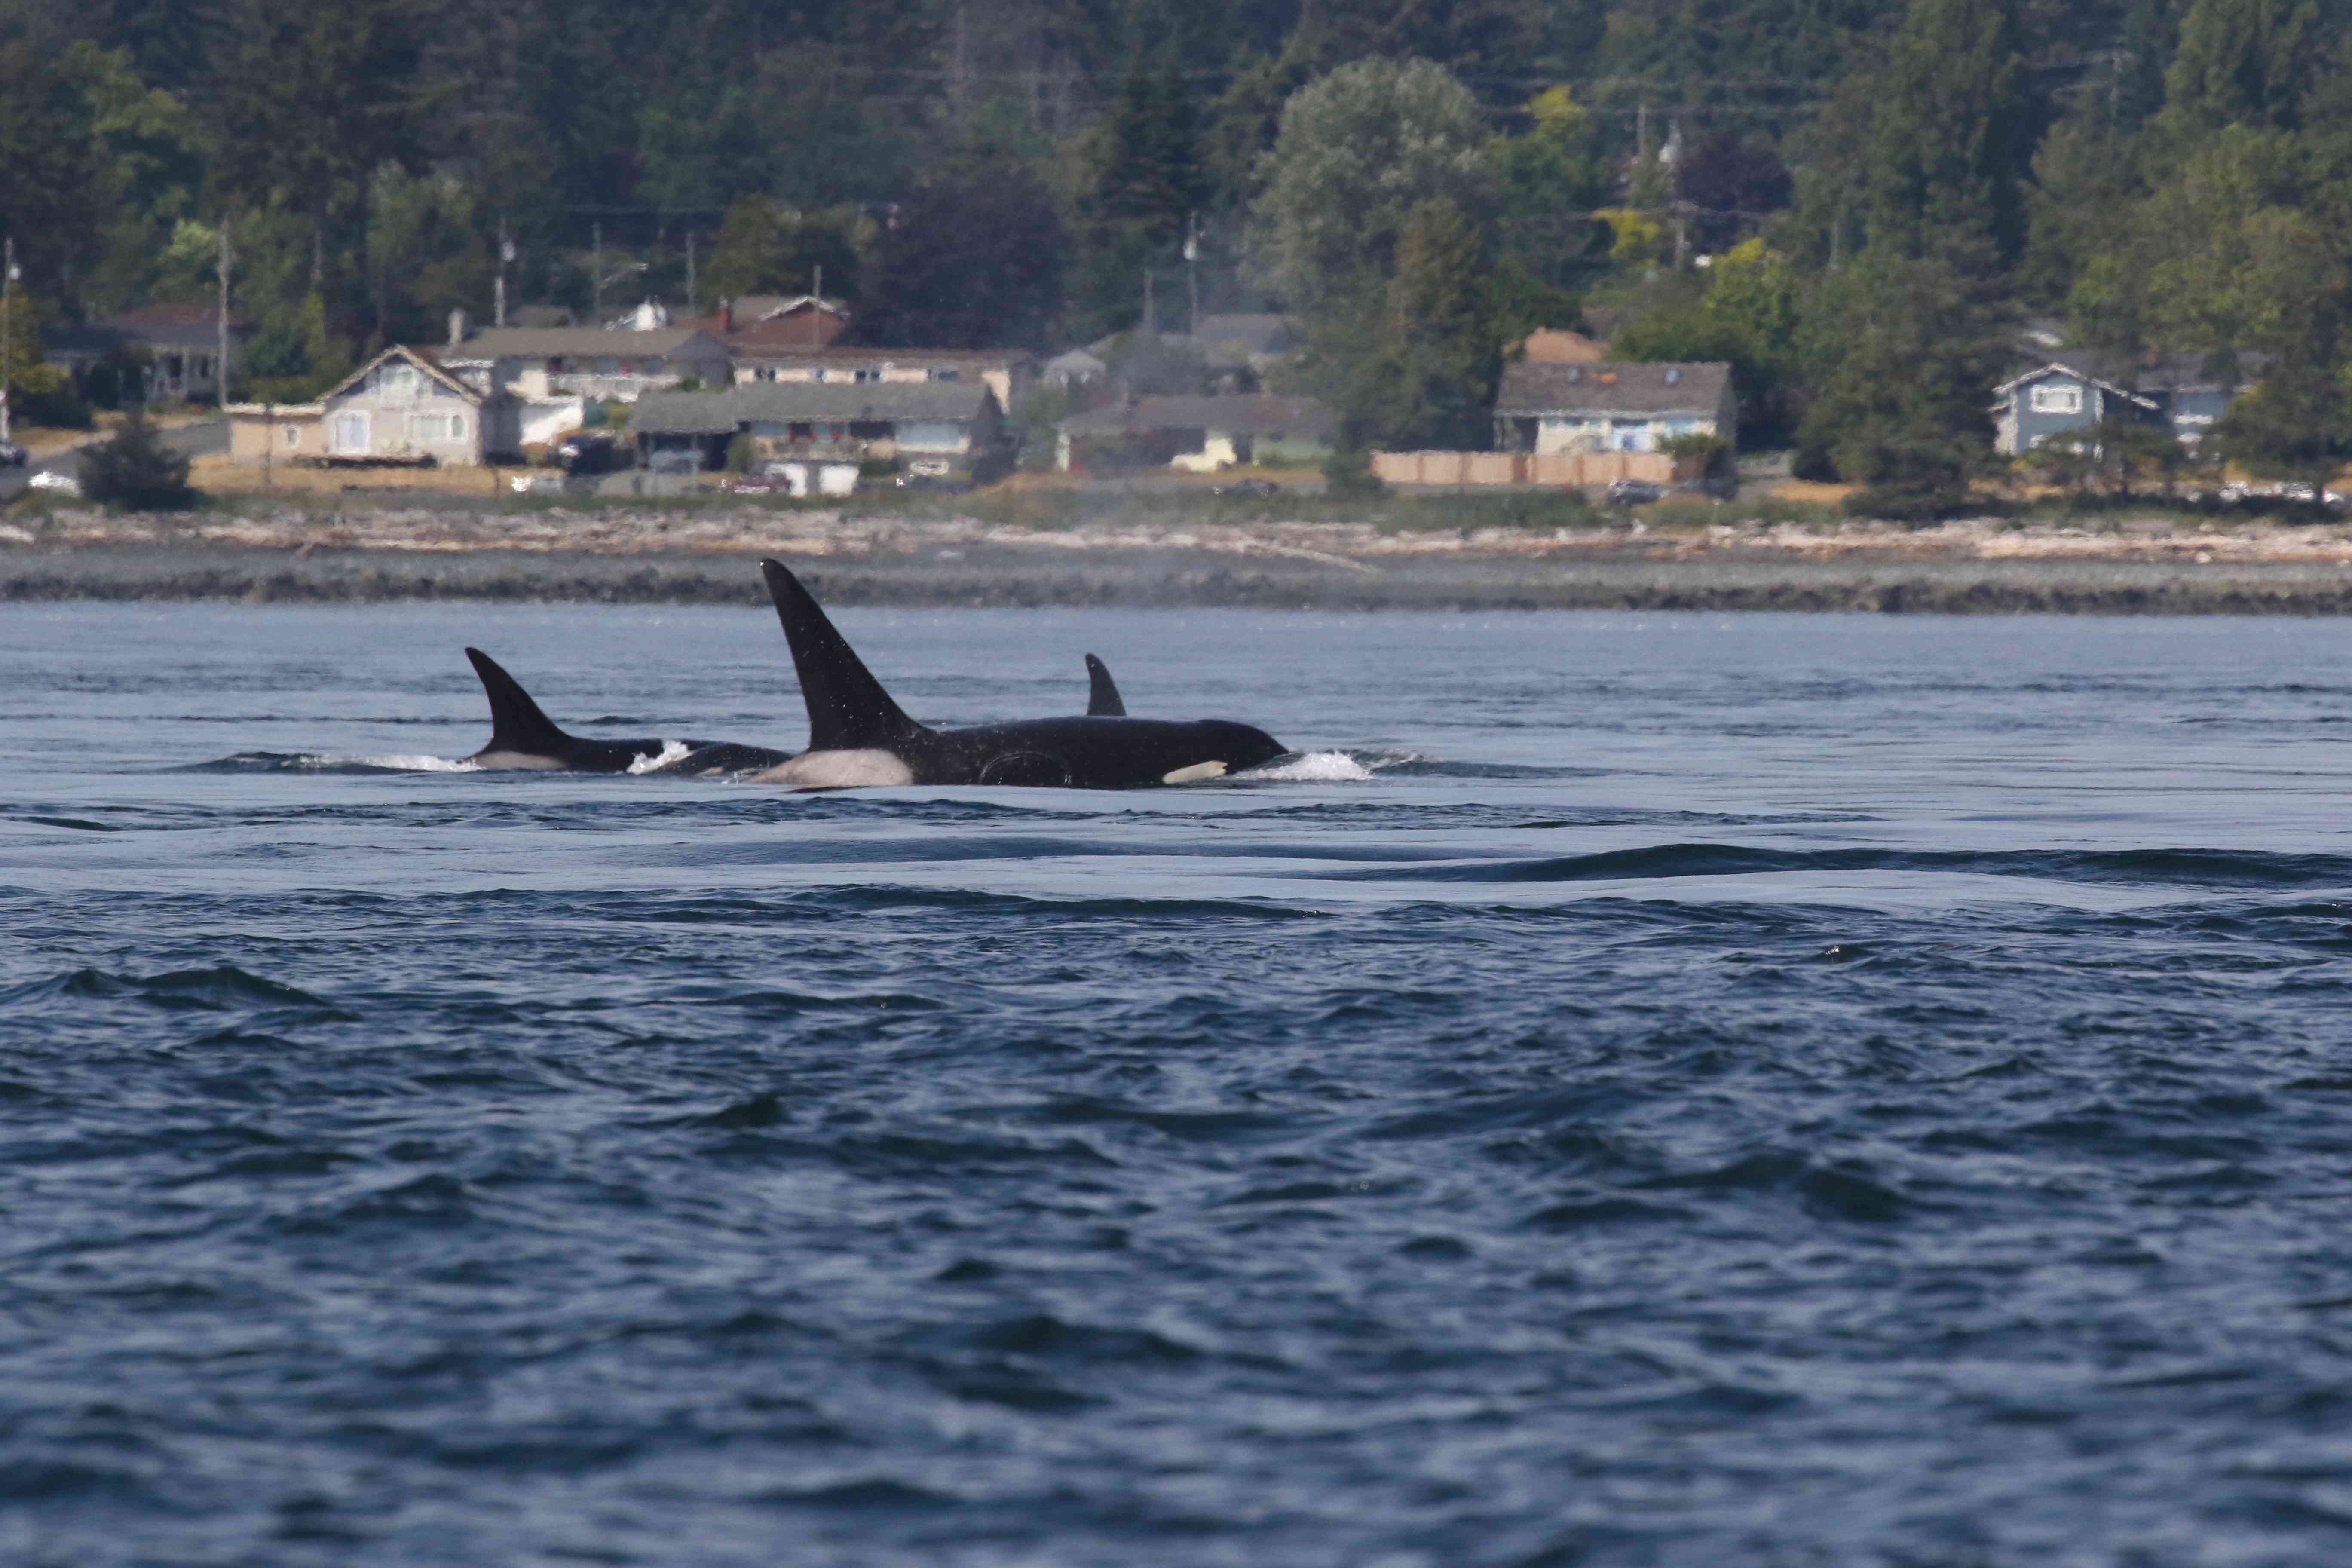 orcas, aka killer whales, in a freshwater river